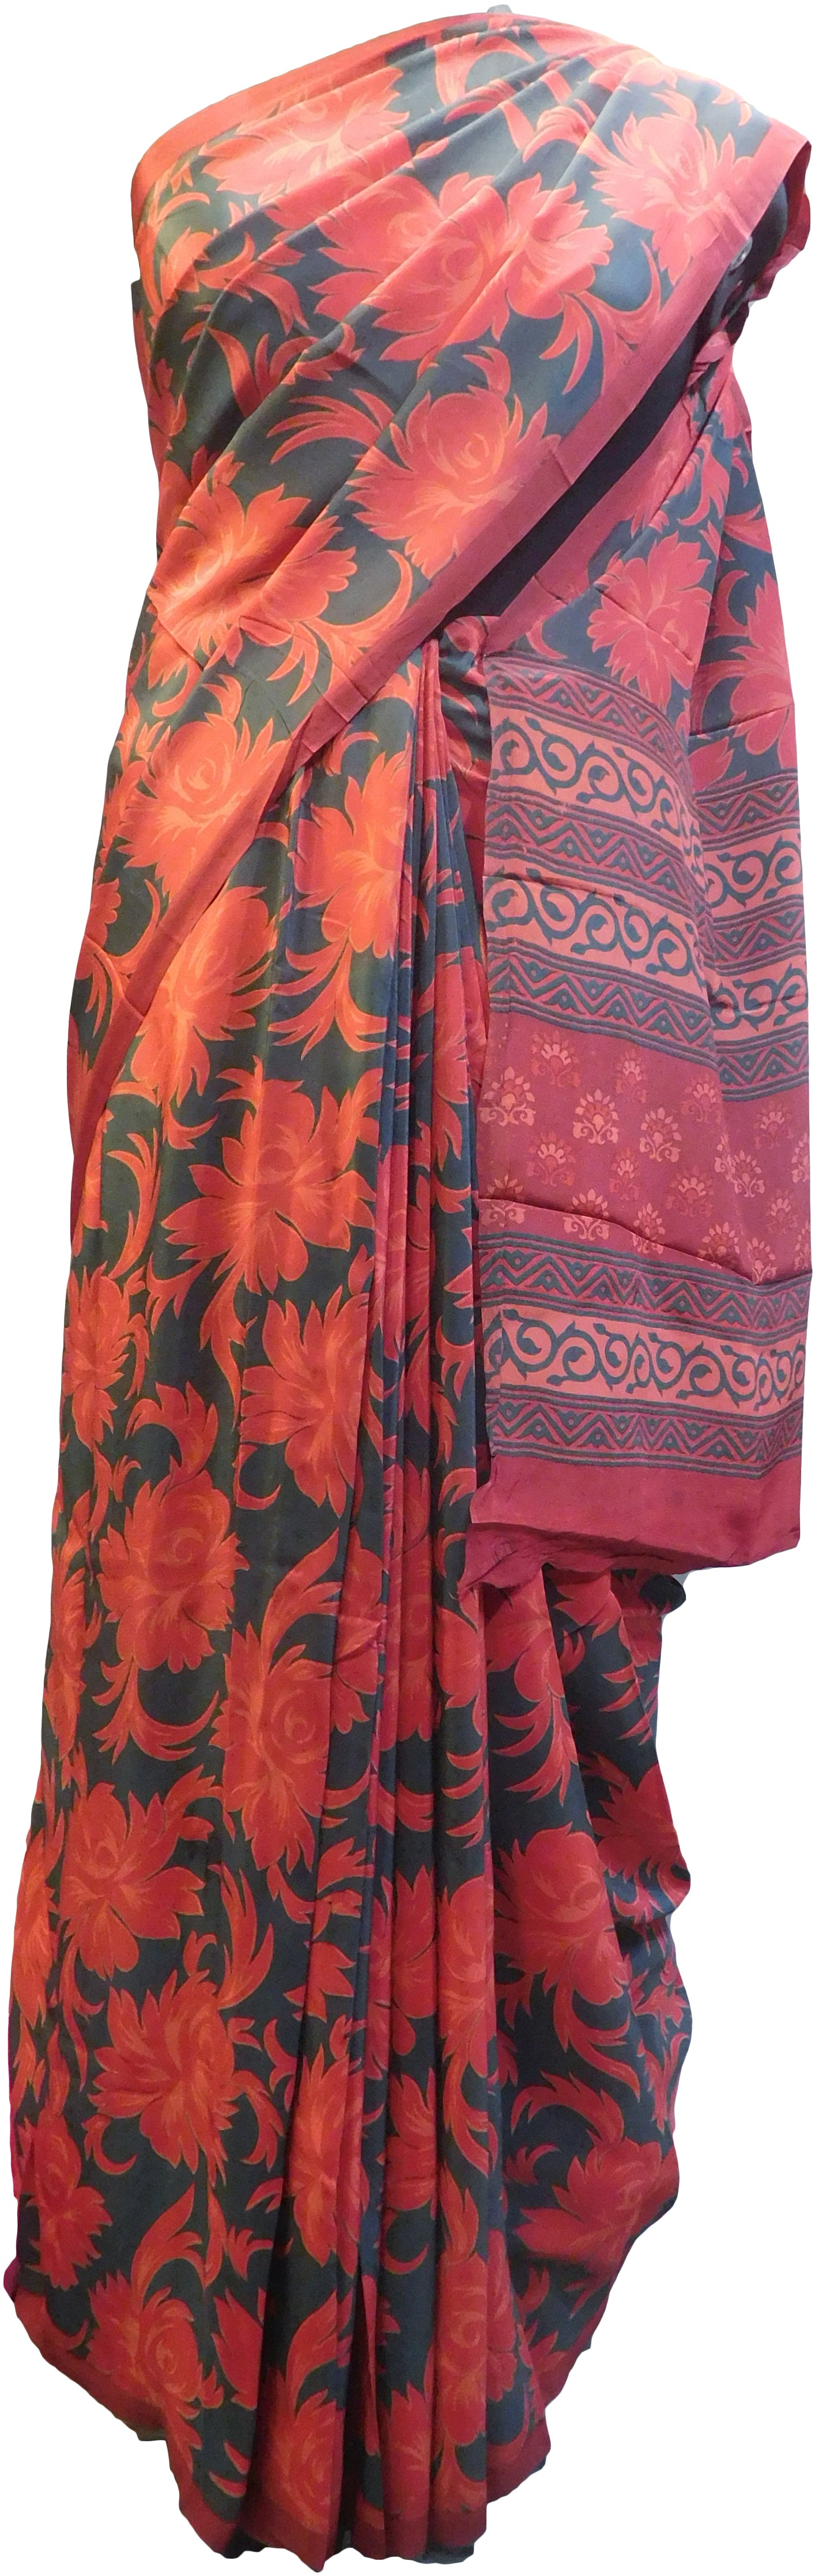 Multicolor Designer Wedding Partywear Pure Crepe Hand Brush Reprinted Kolkata Saree Sari With Blouse Piece  RP280